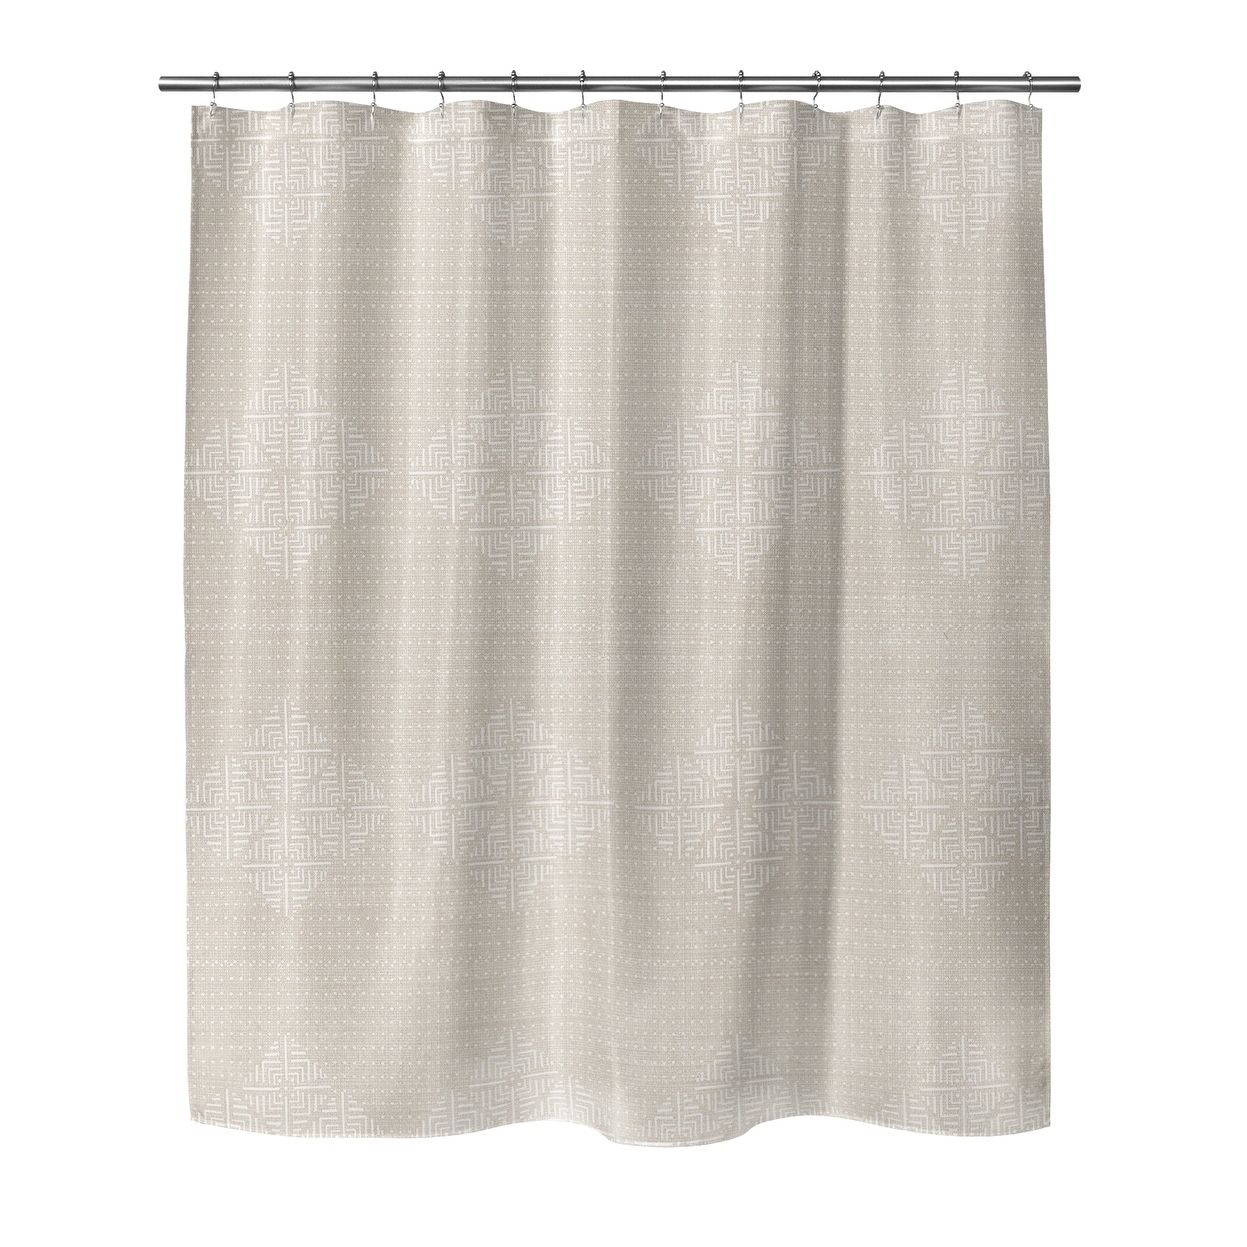 Kavka Designs Blane Cream Shower CurtainsOutlet Store